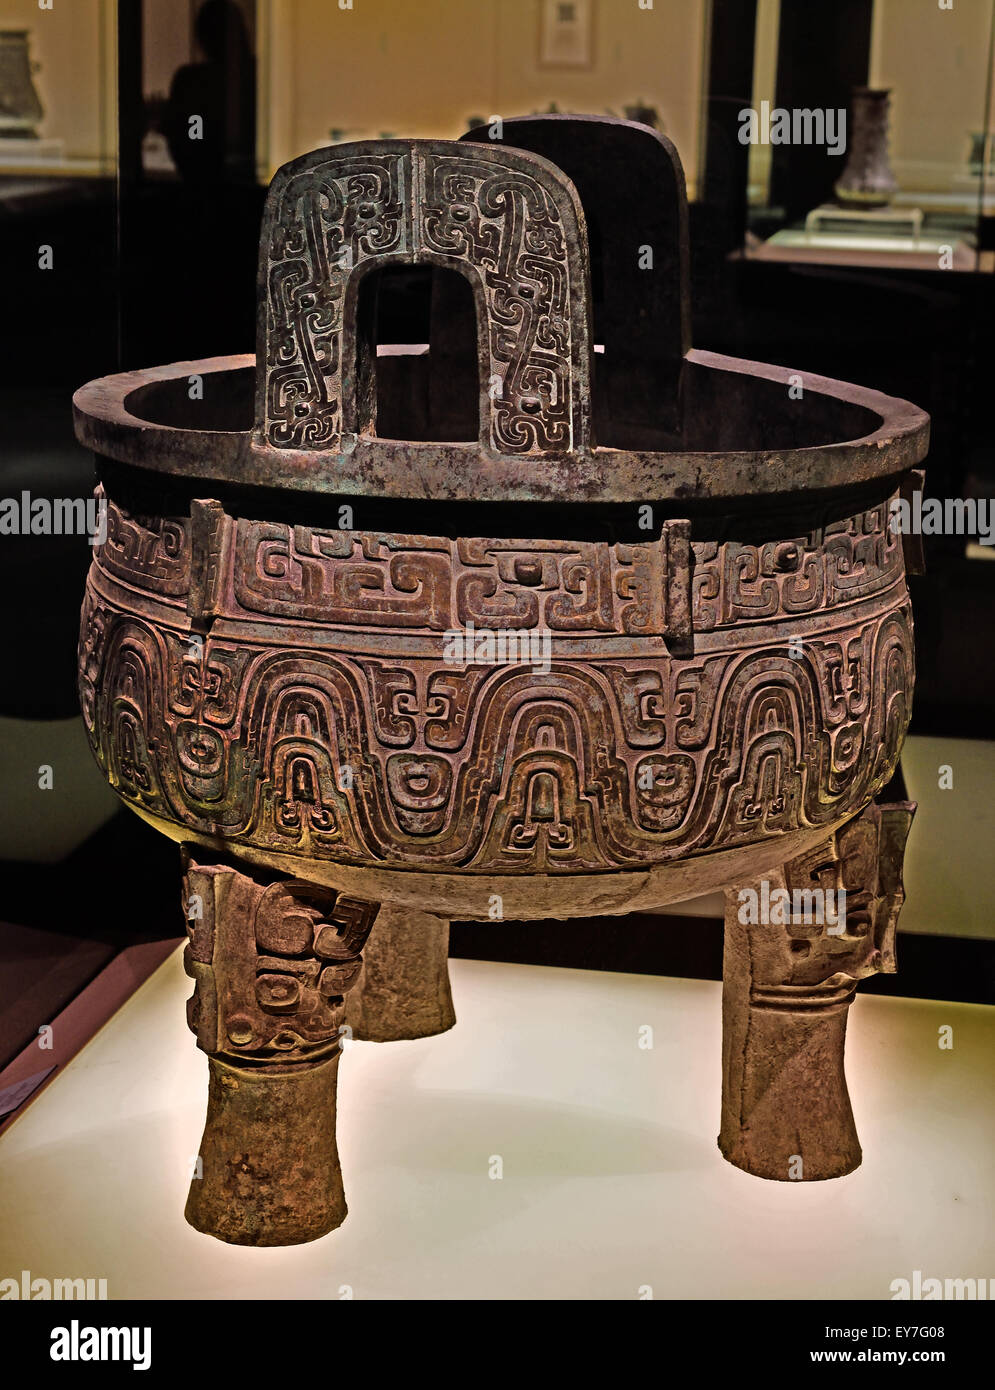 Ancient Chinese Vessel Stock Photos Amp Ancient Chinese